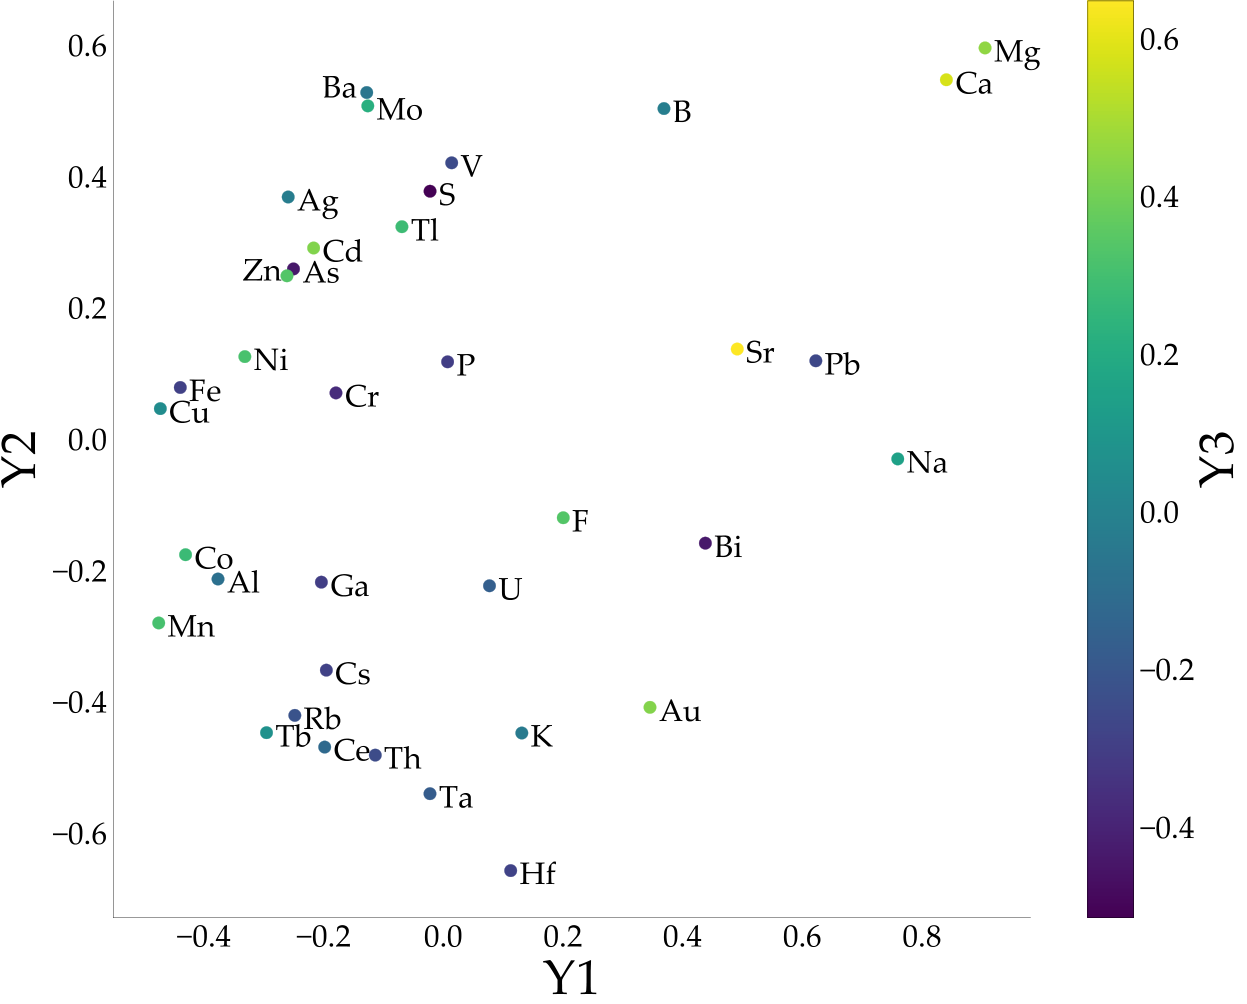 Multidimensional scaling of multivariate elemental data